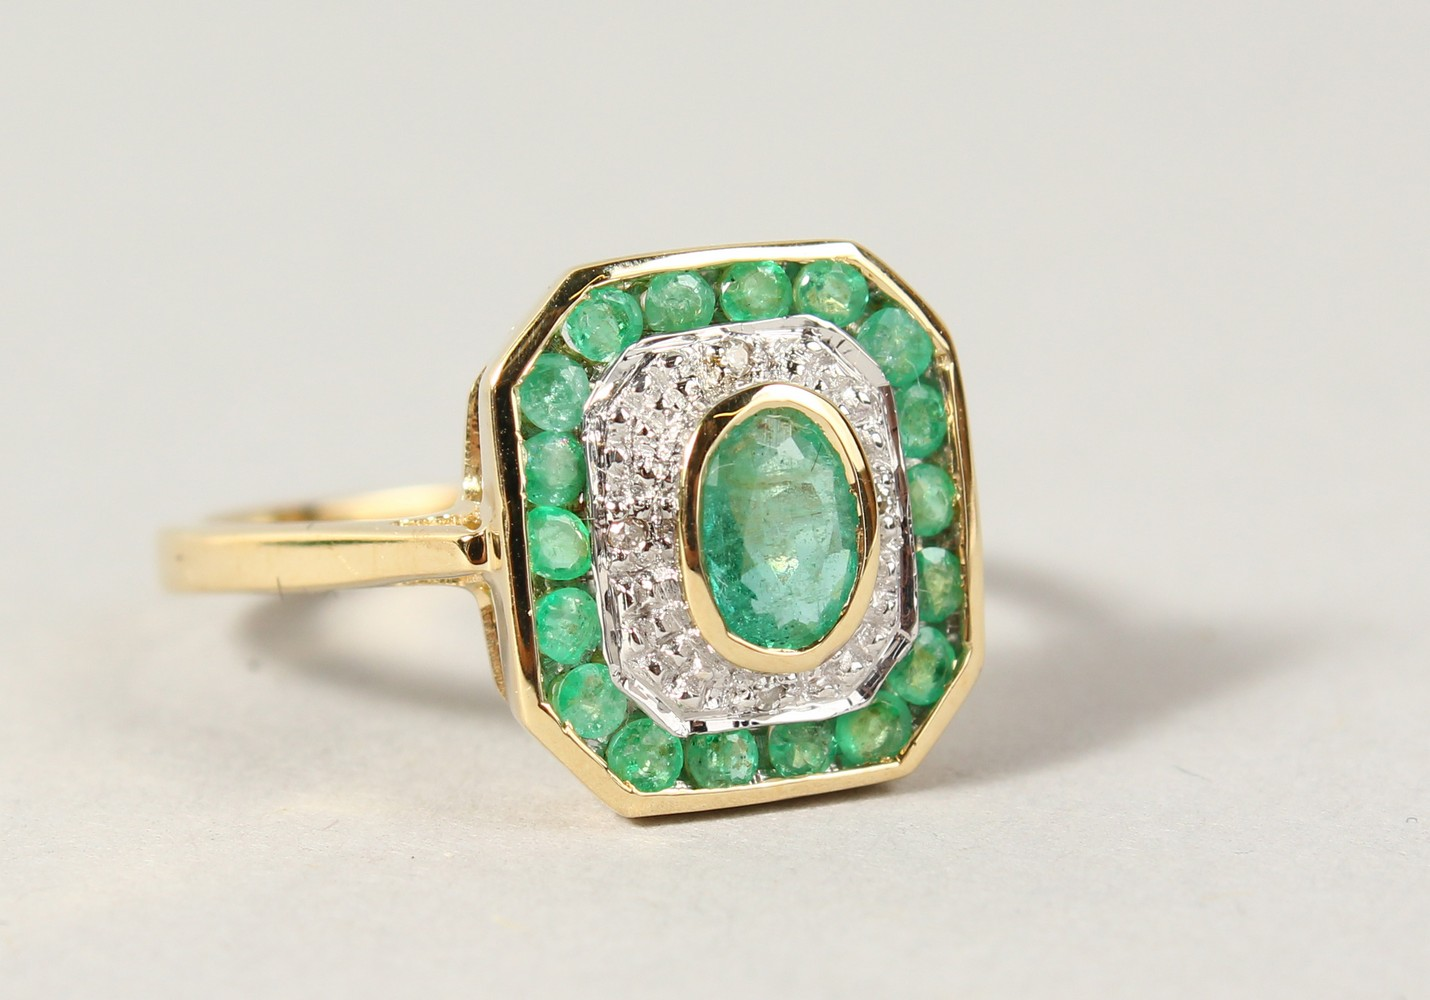 Lot 1766 - A 9CT GOLD, EMERALD AND DIAMOND ART DECO STYLE RING.